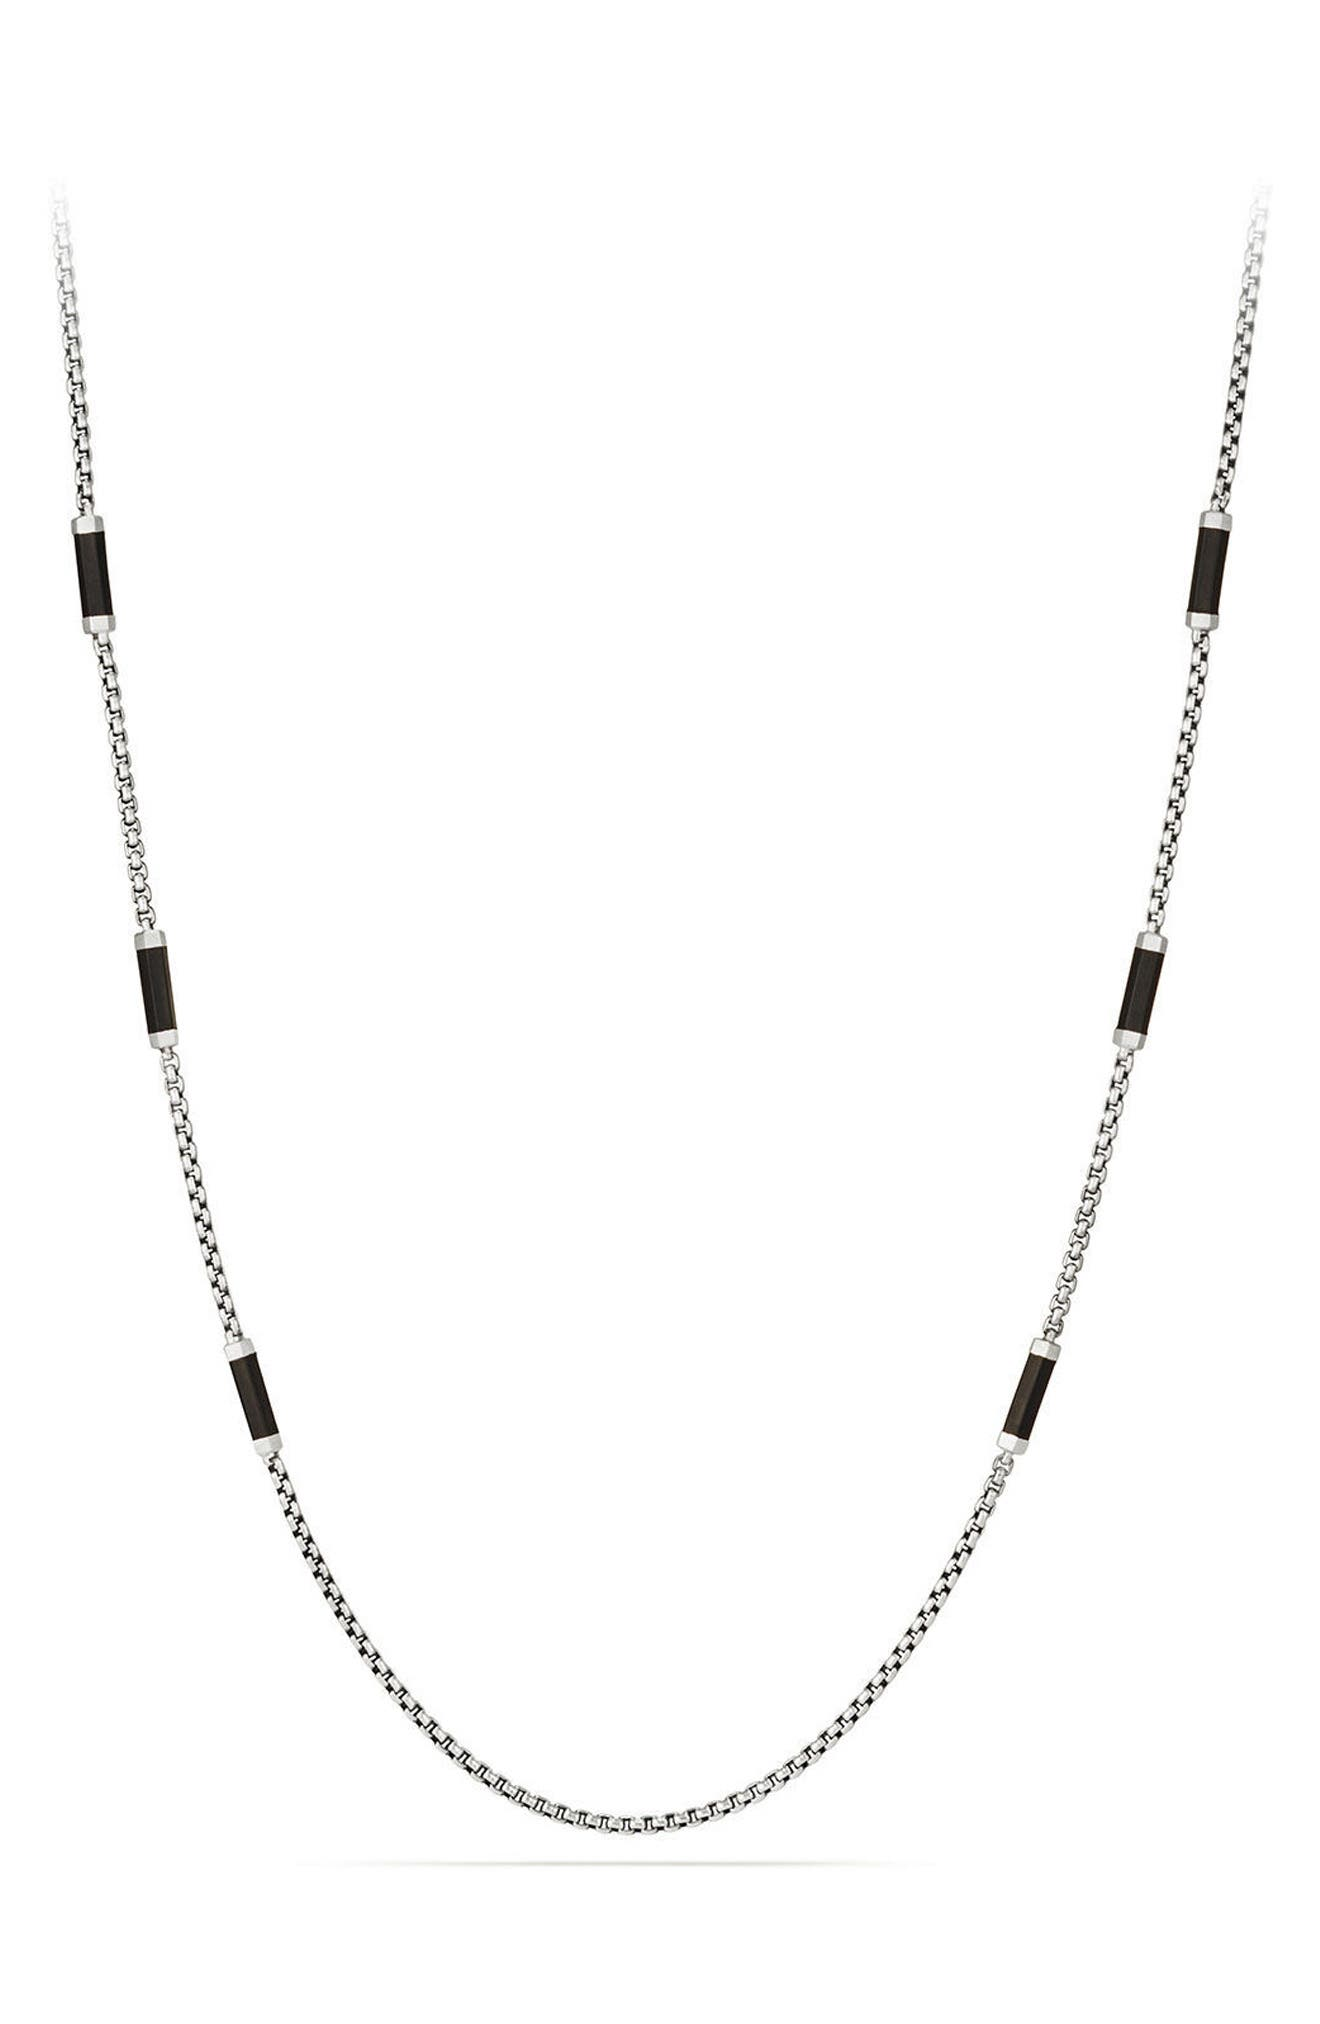 Main Image - David Yurman Hex Station Chain Necklace with Rubber